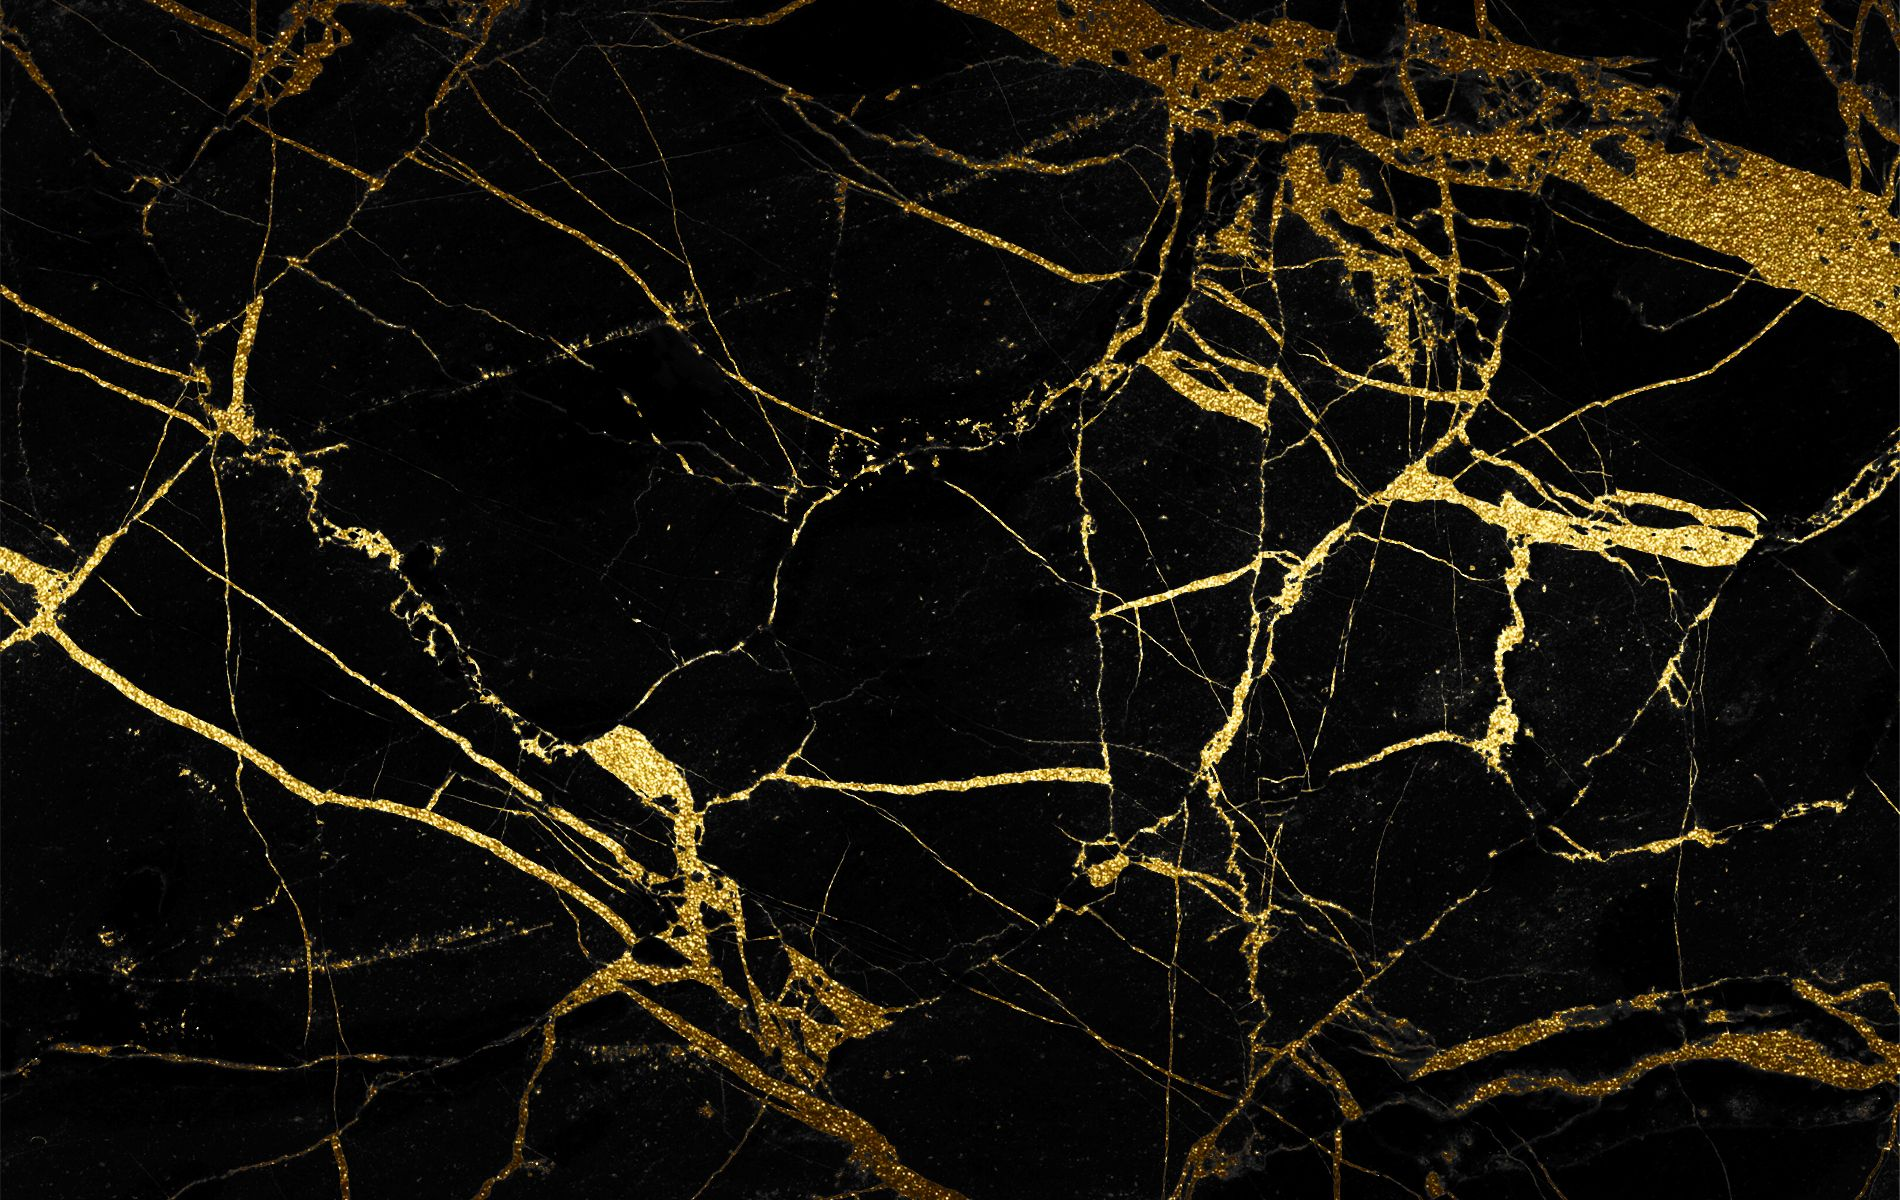 black and gold wallpapers images download cosas que